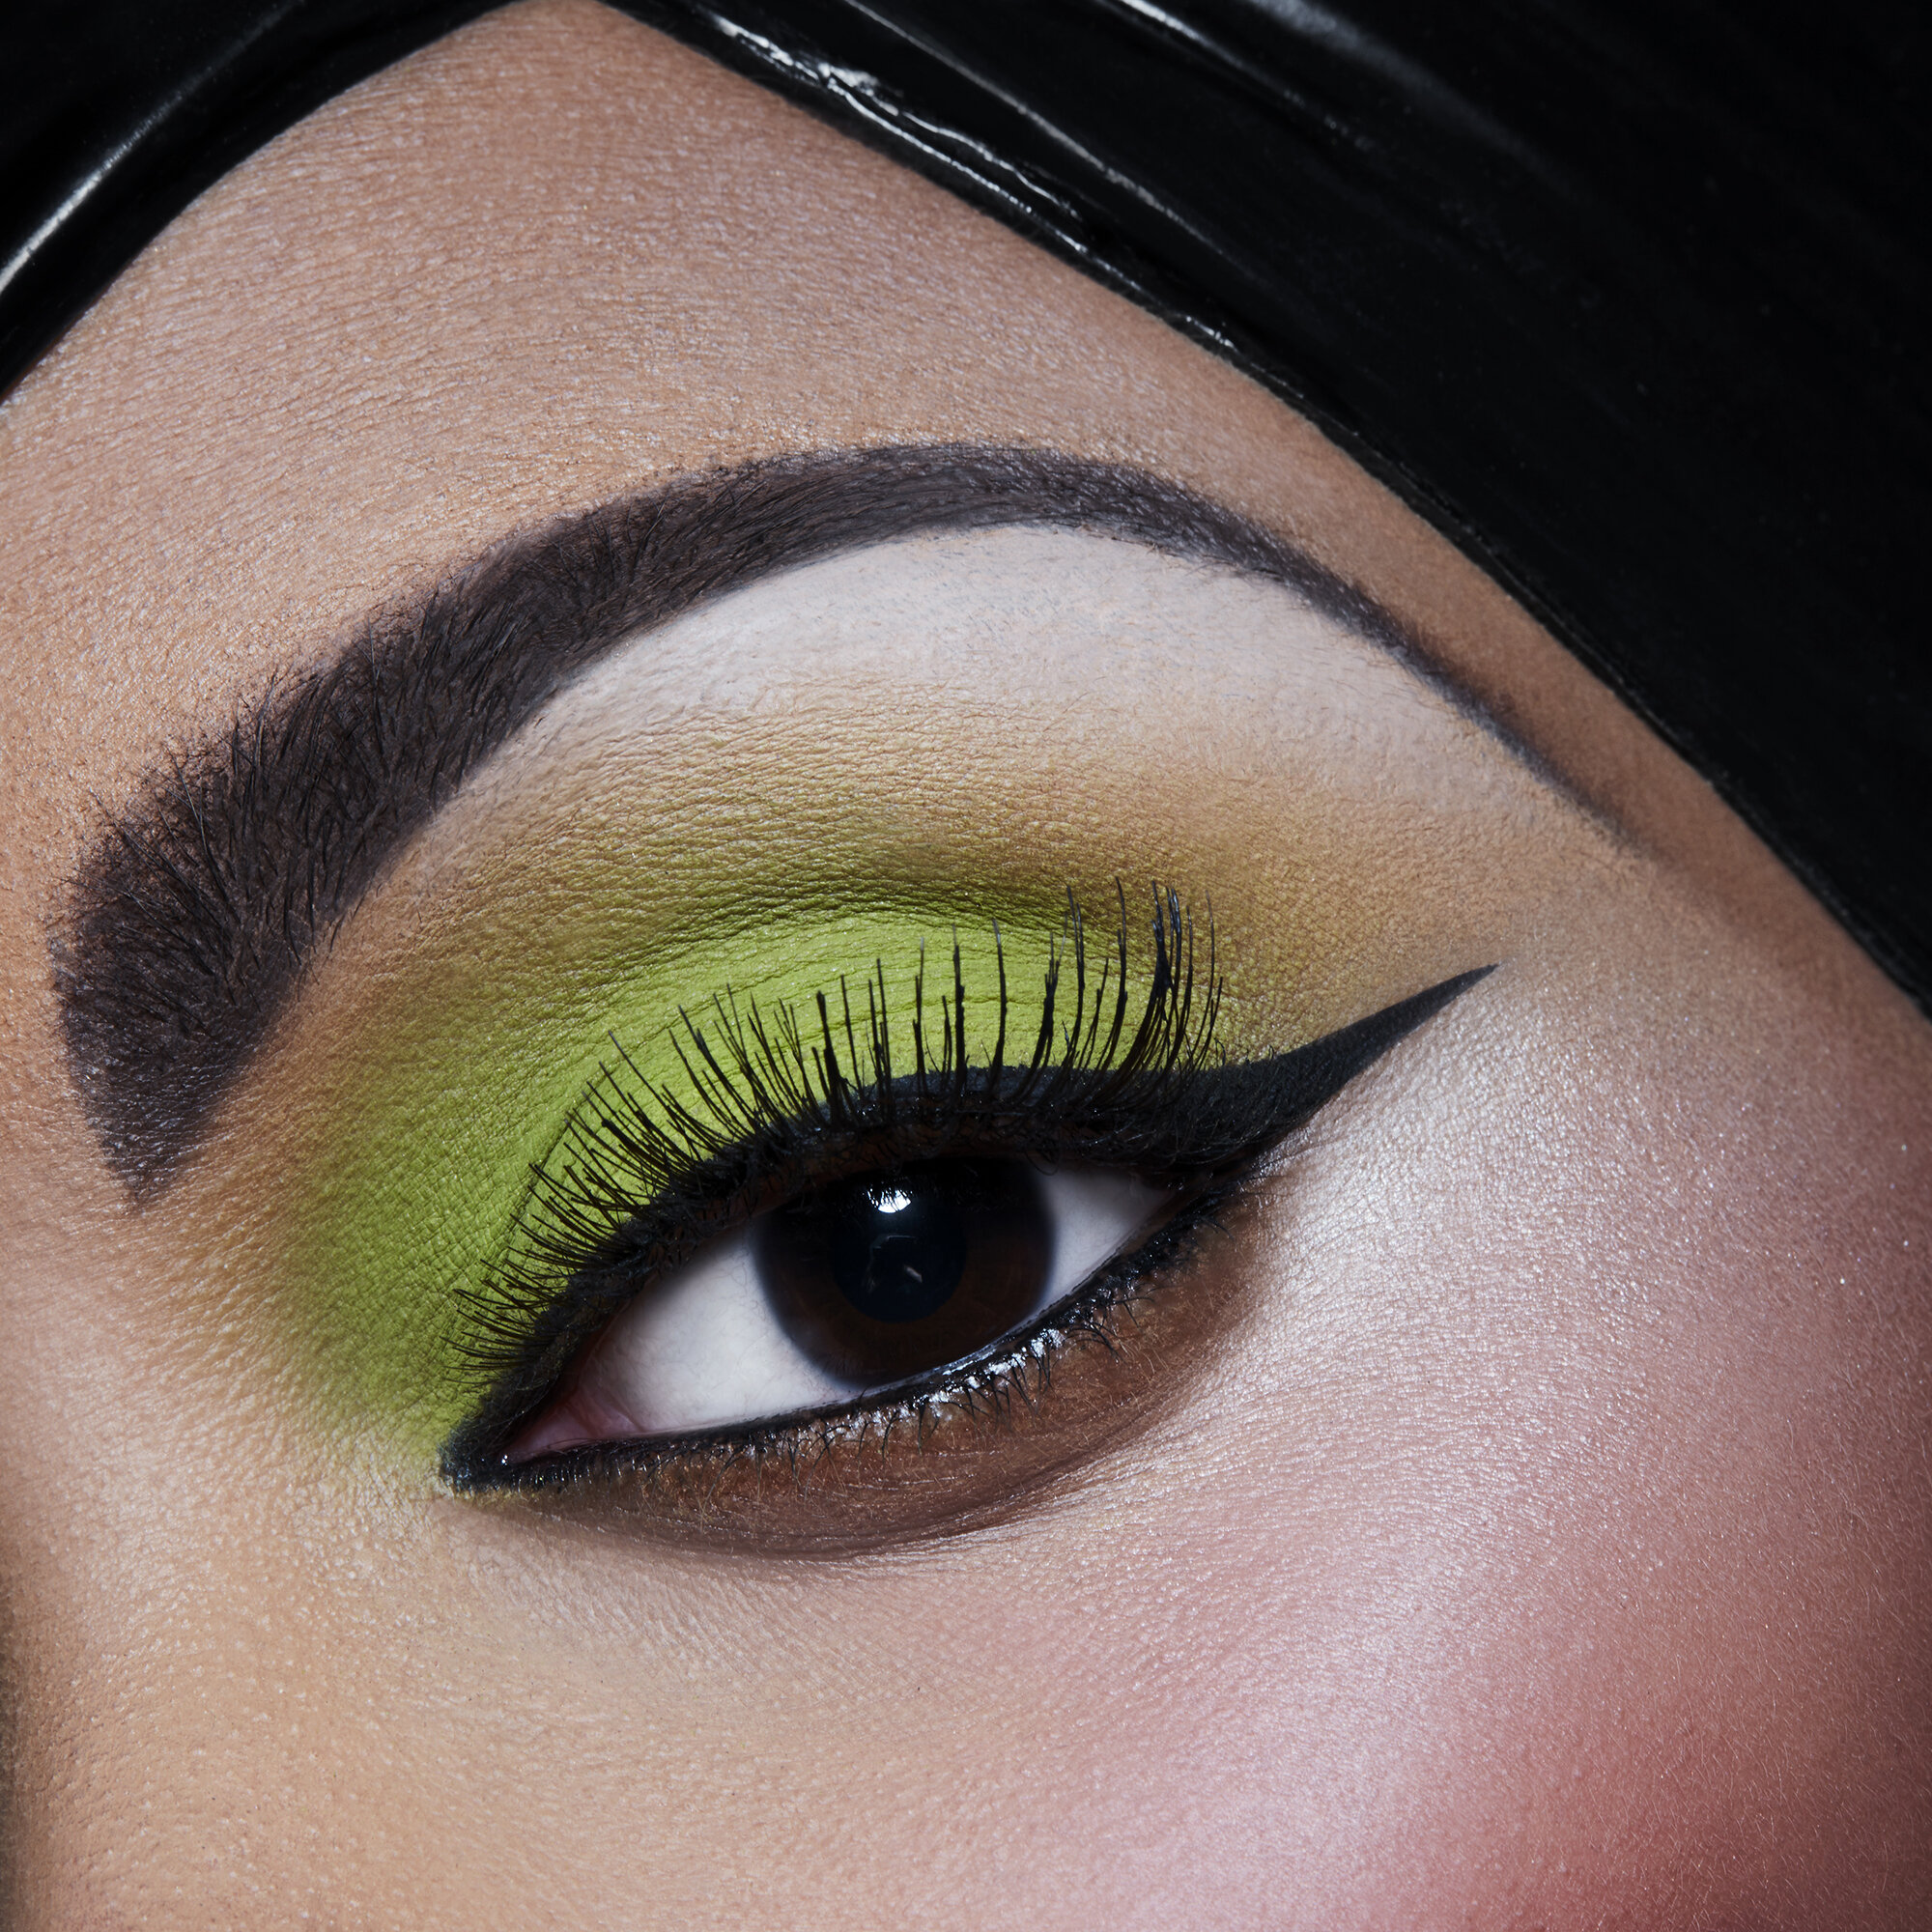 191031_MacCosmetics_Maleficent_Eye_Good_By_BriJohnsonStudios.jpg.jpg